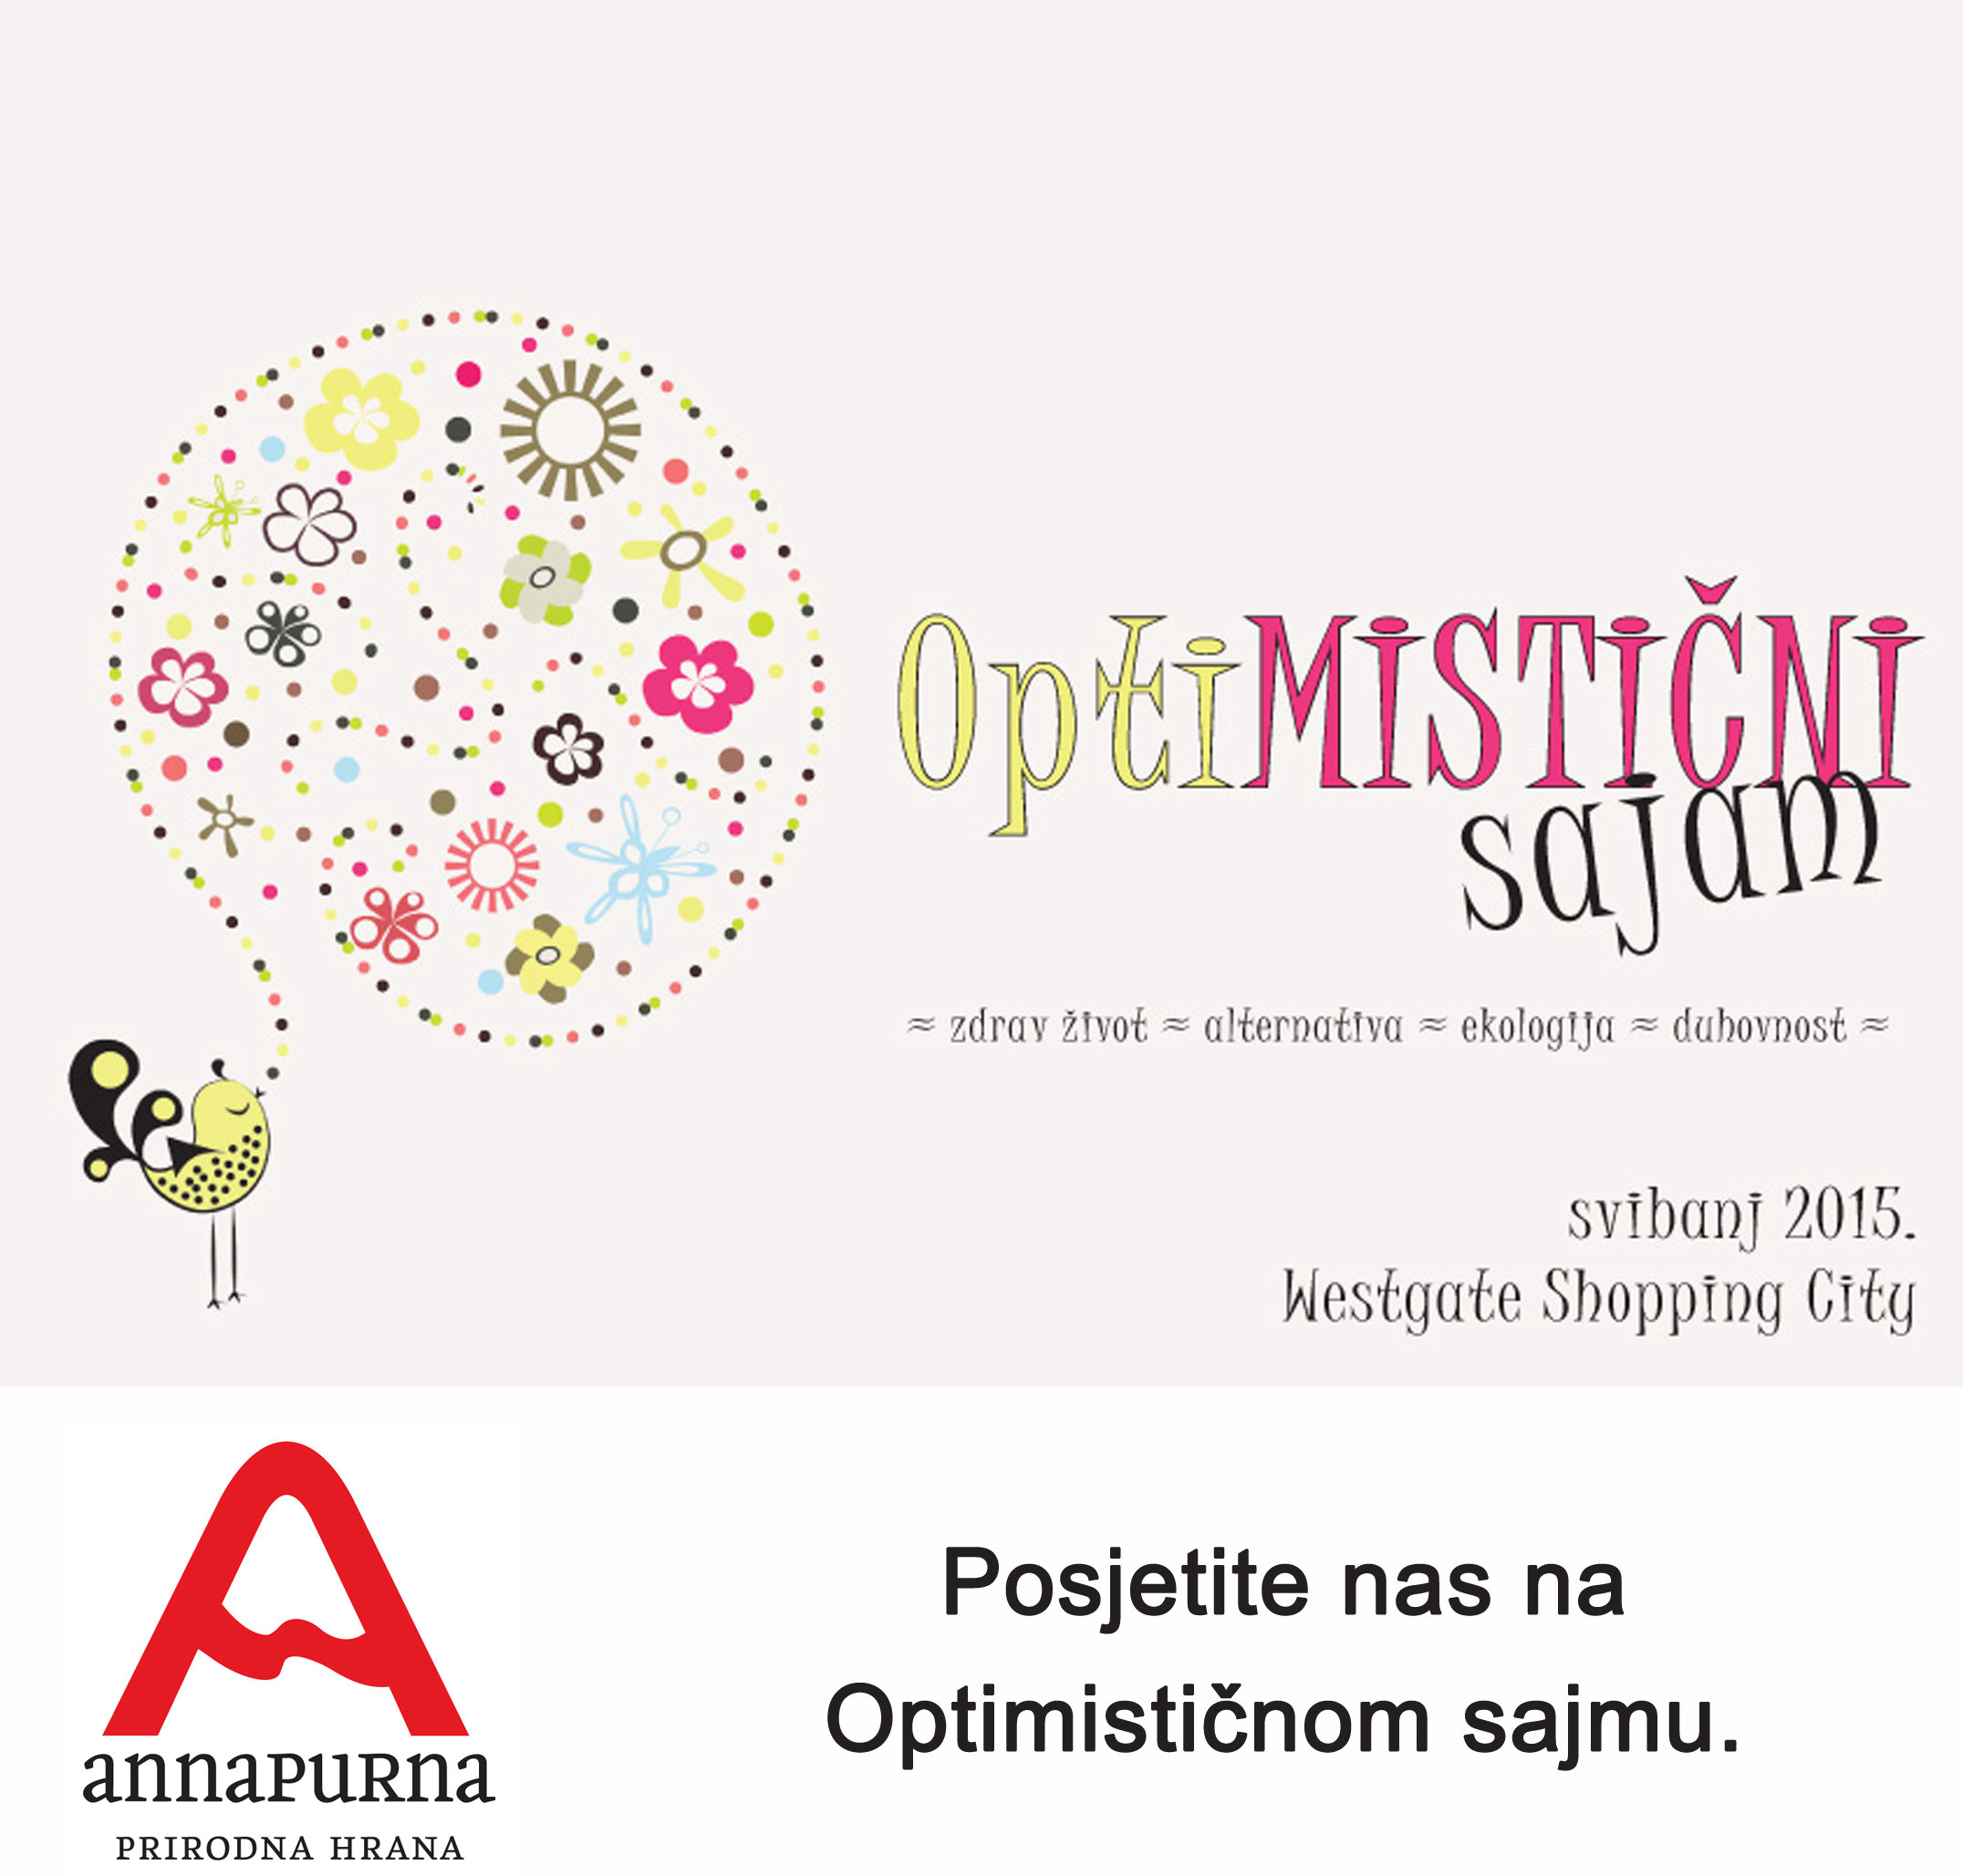 optimisticni